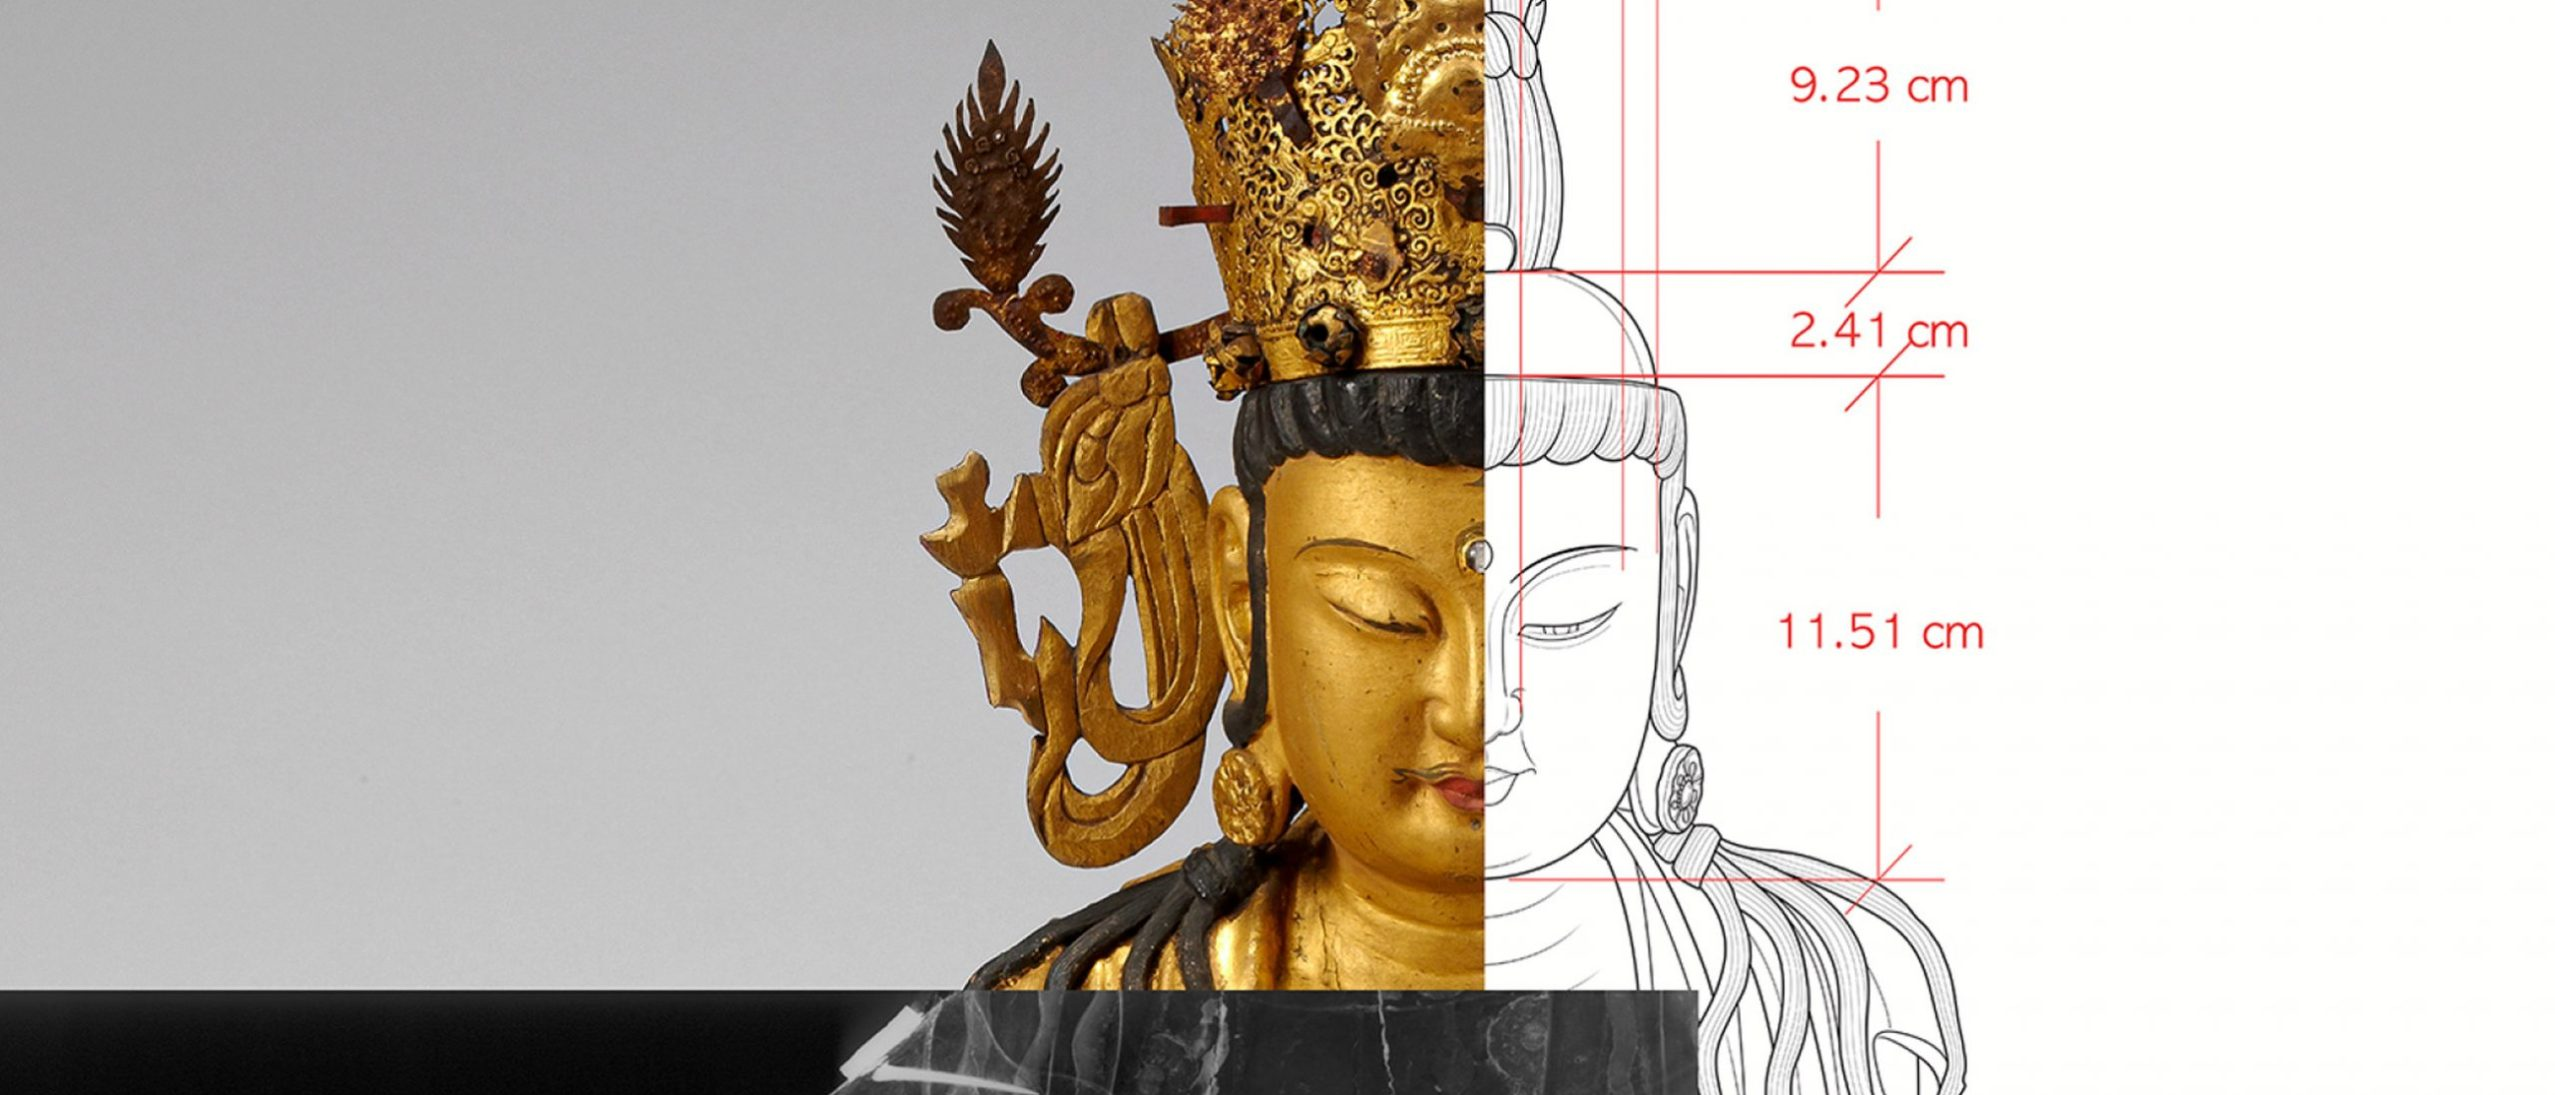 A collage of three images - the head of the NMK avalokiteshvara, a smiling golden figure with a crown; a diagram of the same image with measurements, and a black and white xray